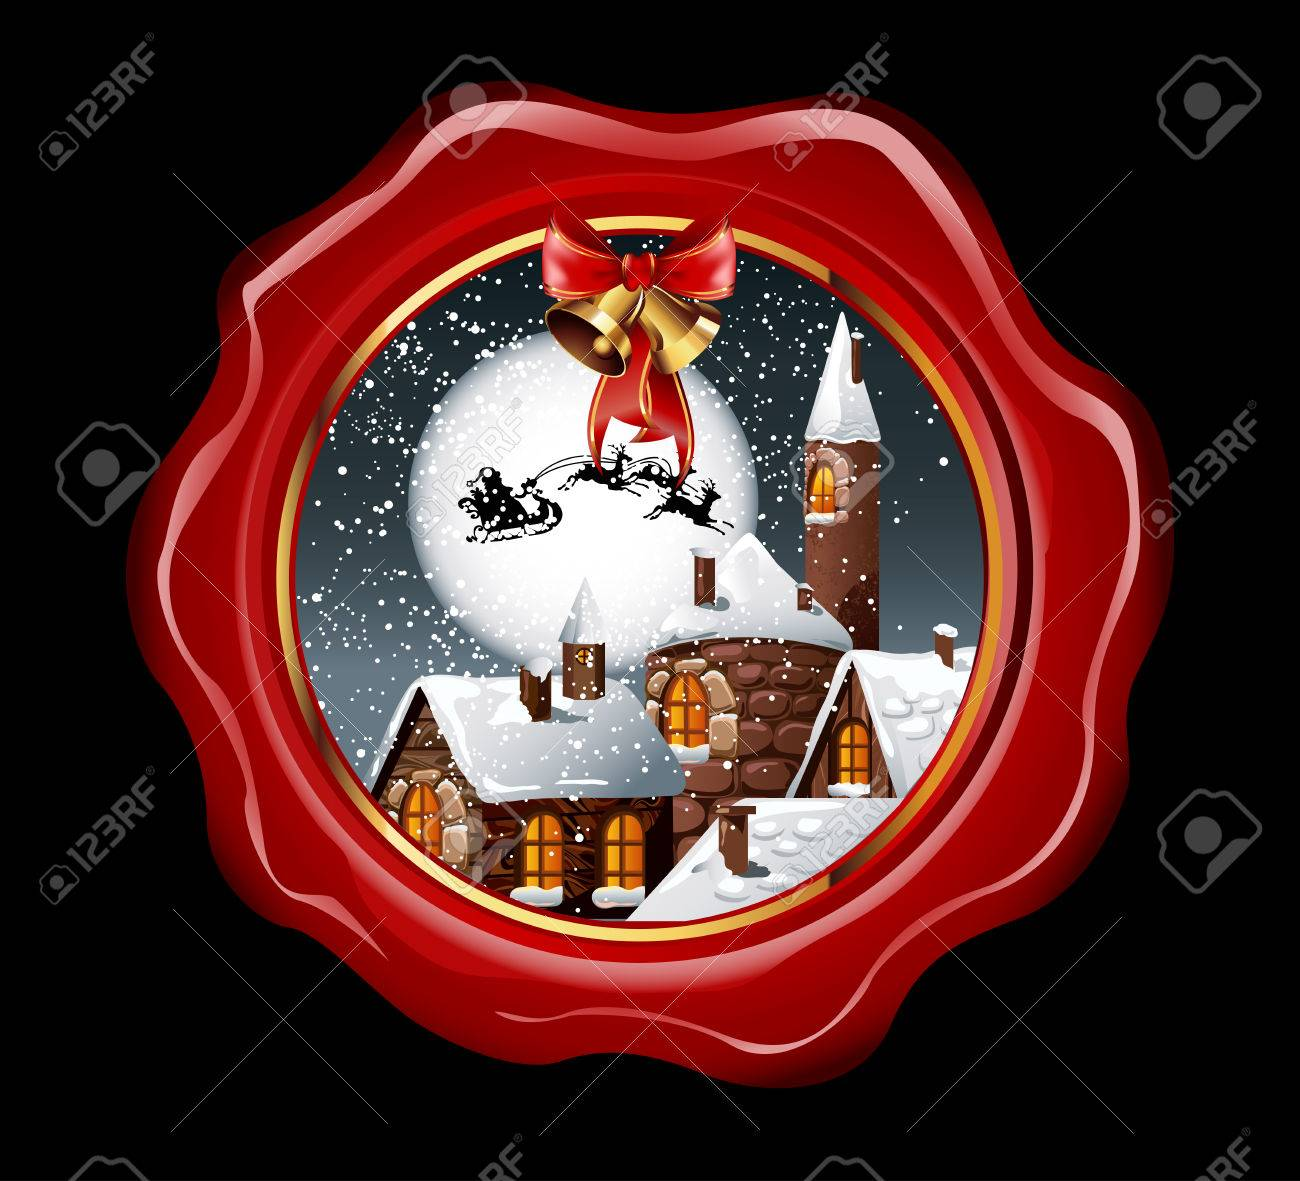 ee46200ad1 Christmas illustration of wax seal with snowy town and santa claus flying  on his sleigh on